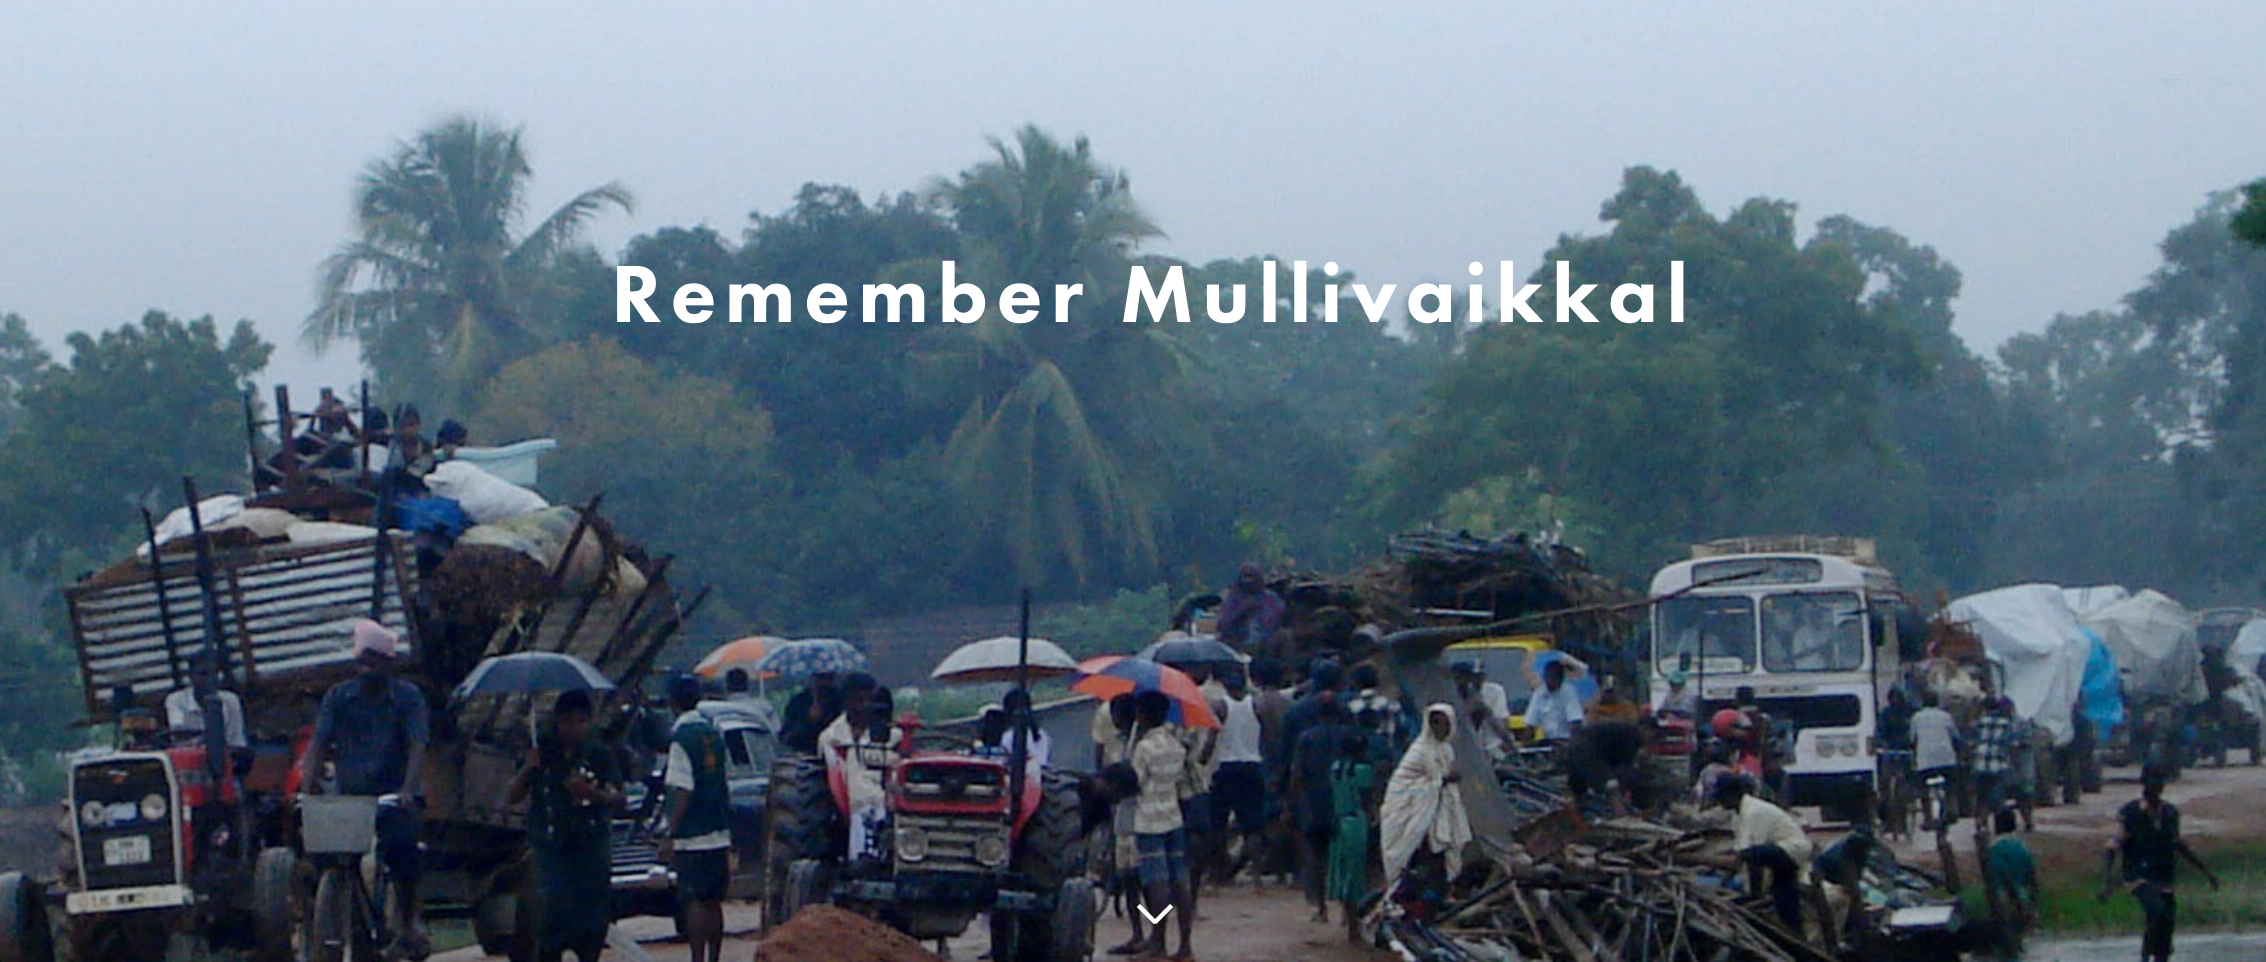 Remember Mullivaikkal' website launched to commemorate massacres